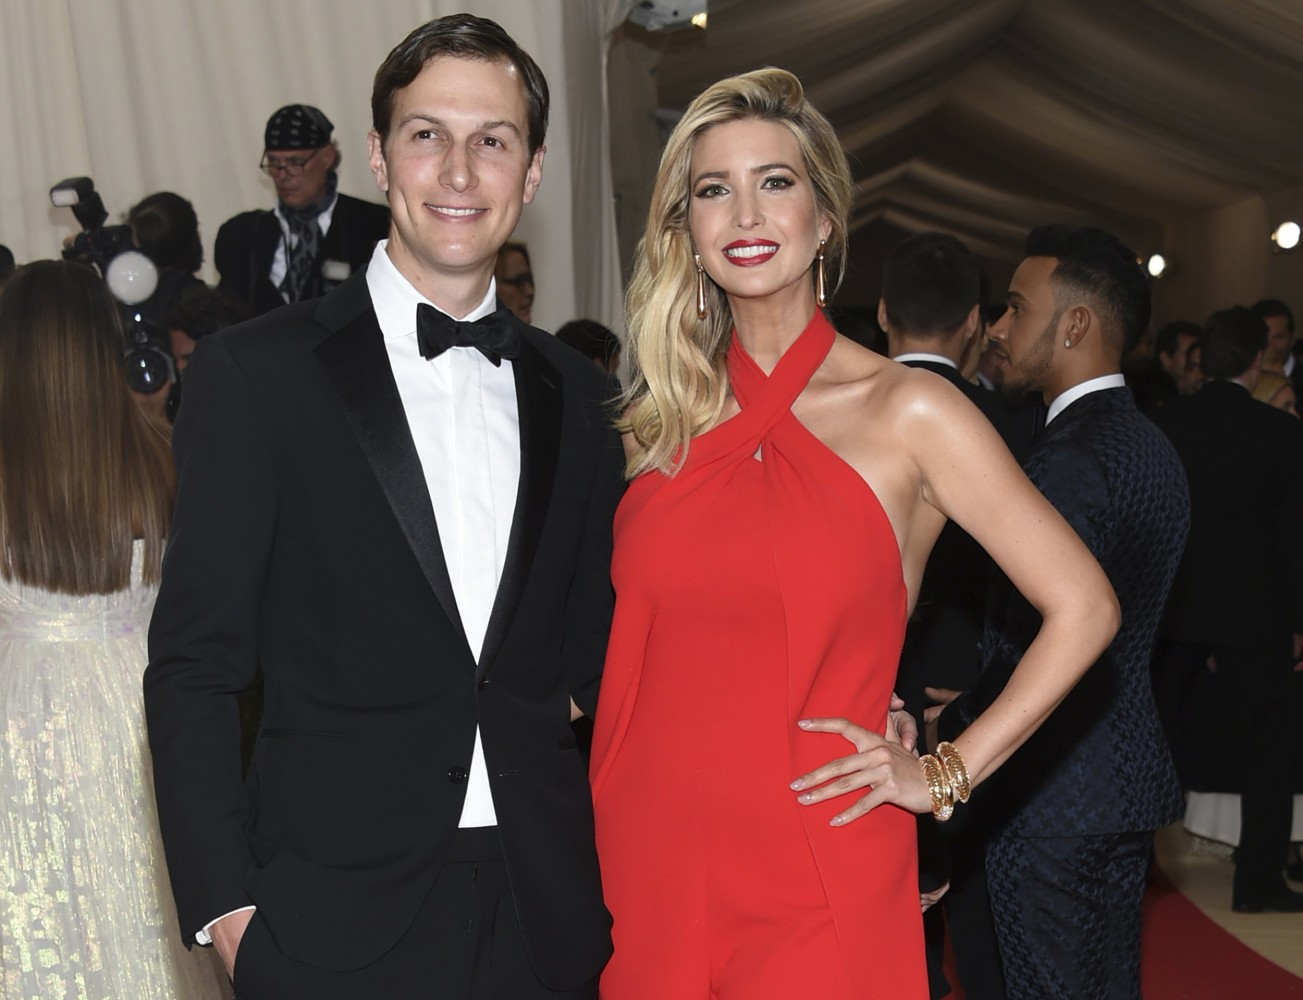 Meet Jared Kushner, Trump's Publisher Son-in-Law - NBC News